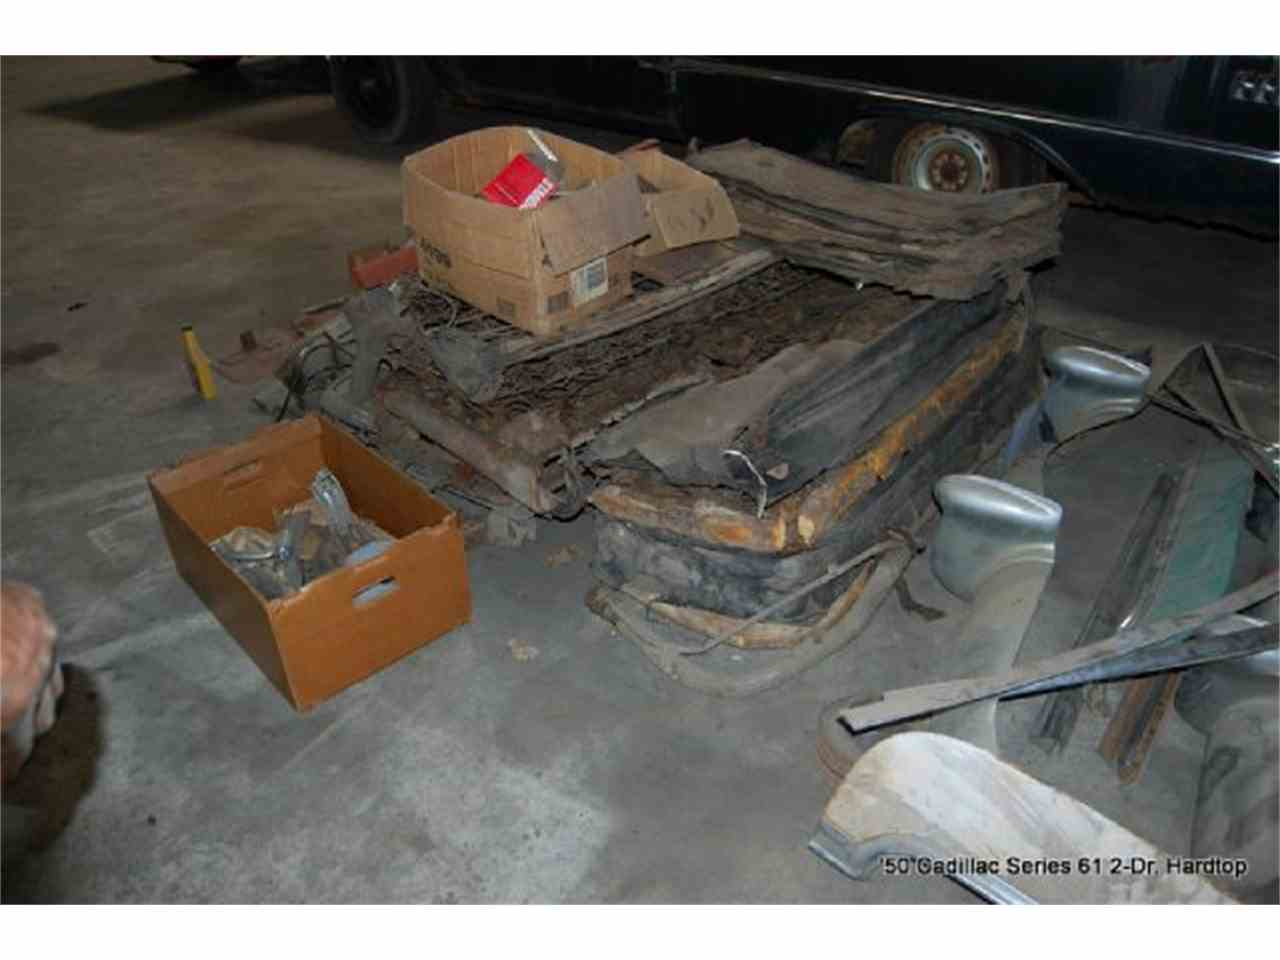 Large Picture of Classic '50 Series 61 Hardtop Project - $5,500.00 - DDK3